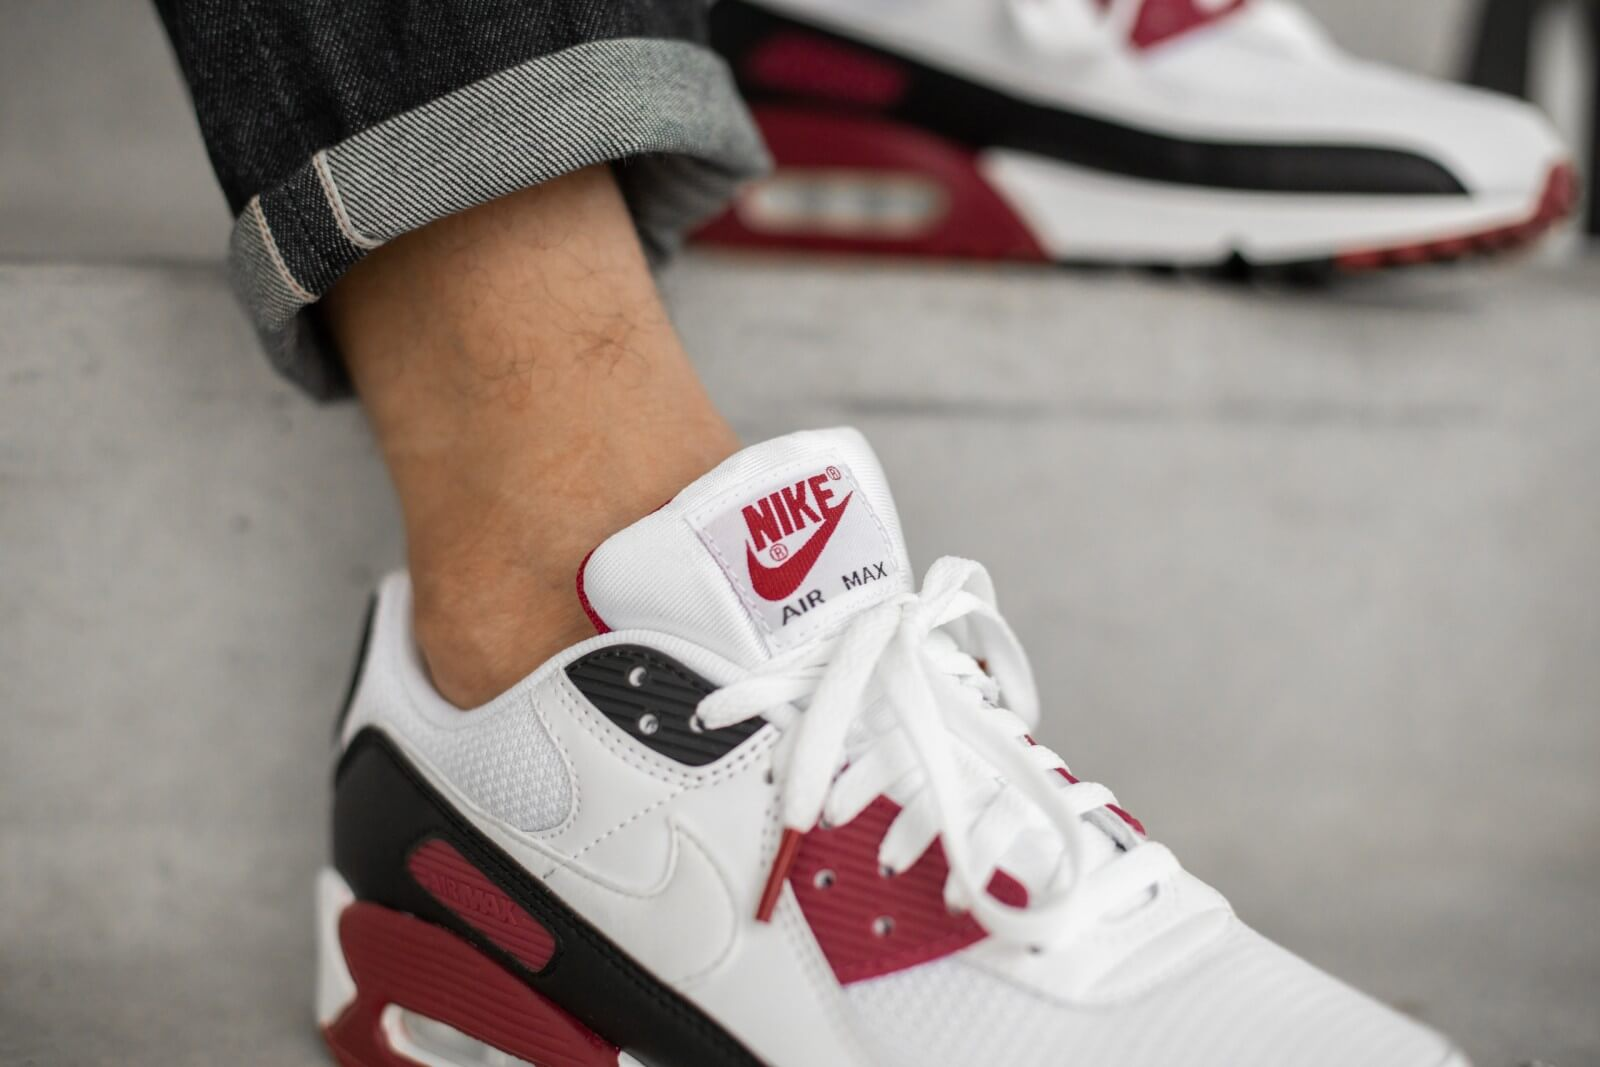 Air Max 90 Maroon Online Hotsell, UP TO 50% OFF